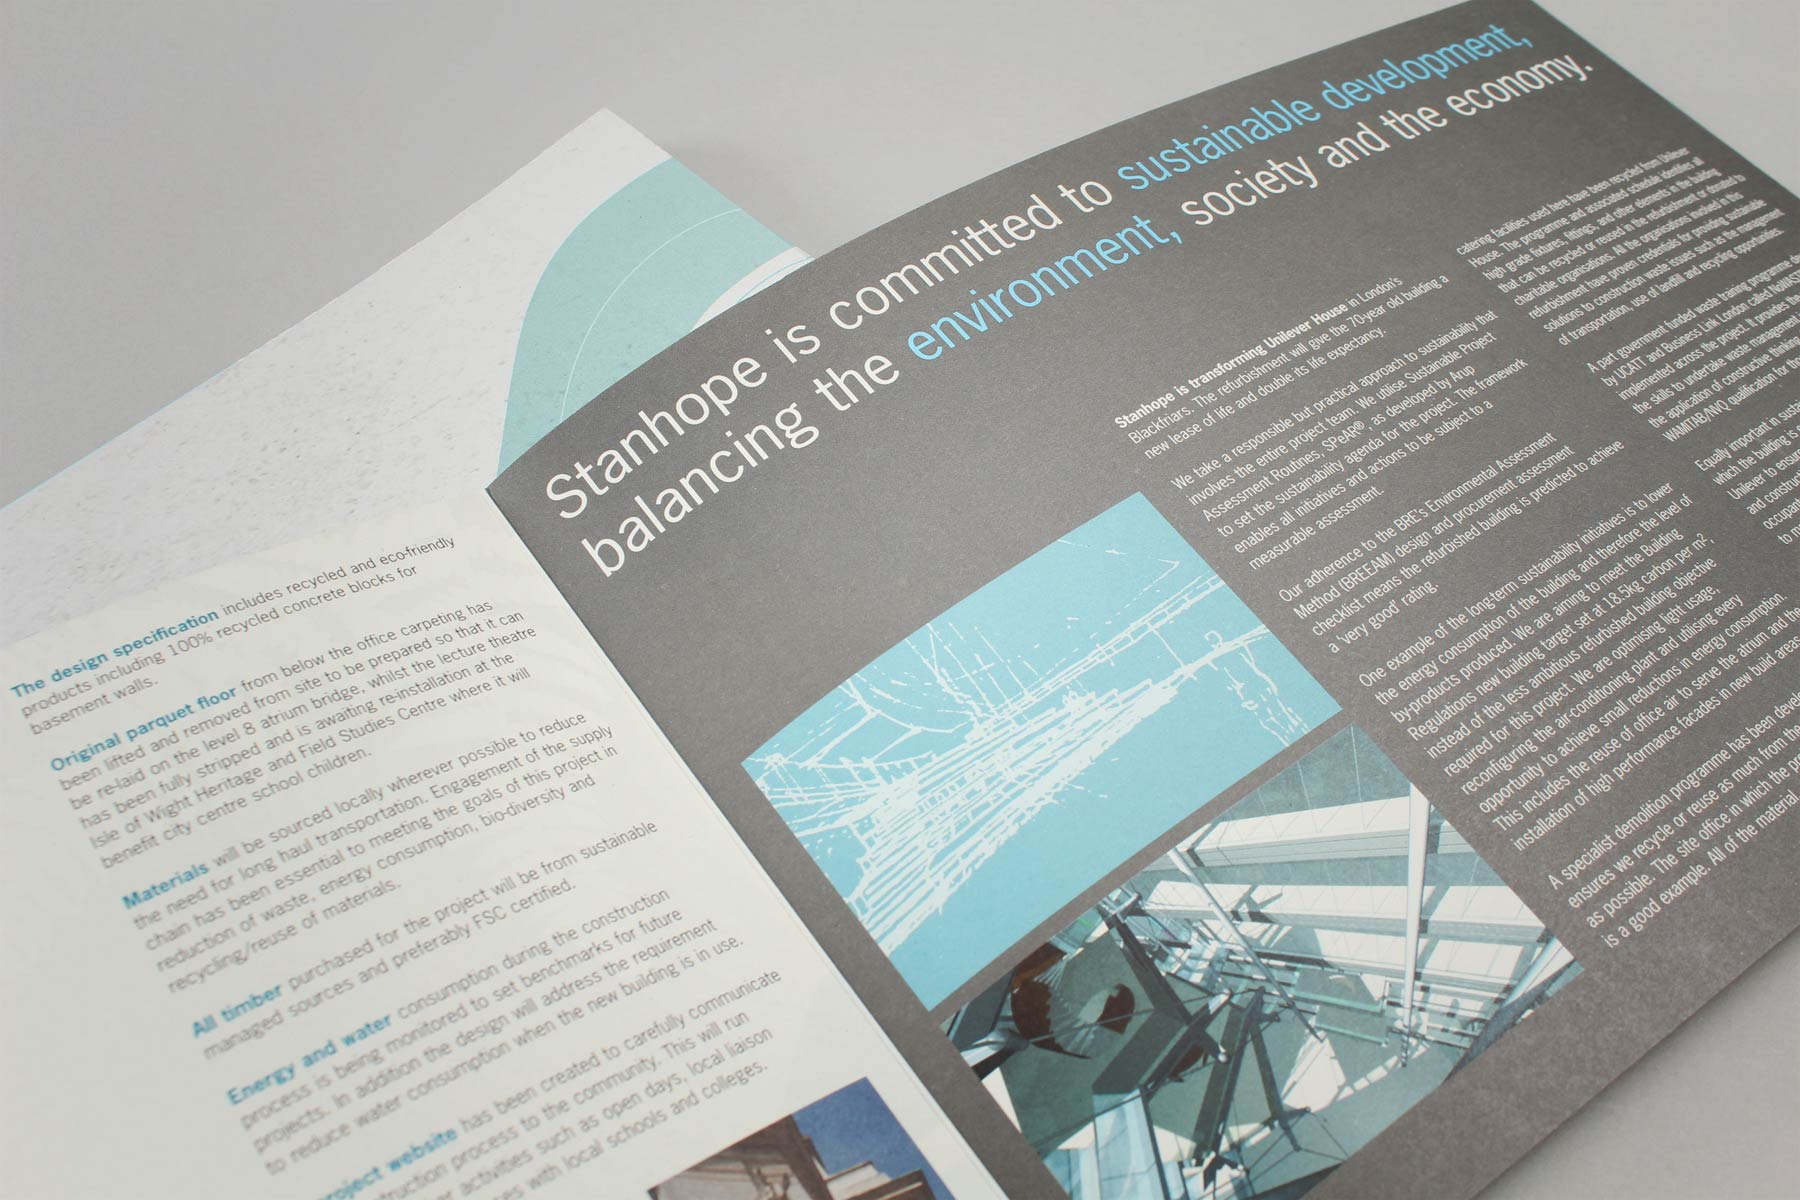 The communication featured information and diagrams conveying the Stanhope vision of building a future-fit, sustainable HQ for Unilever.